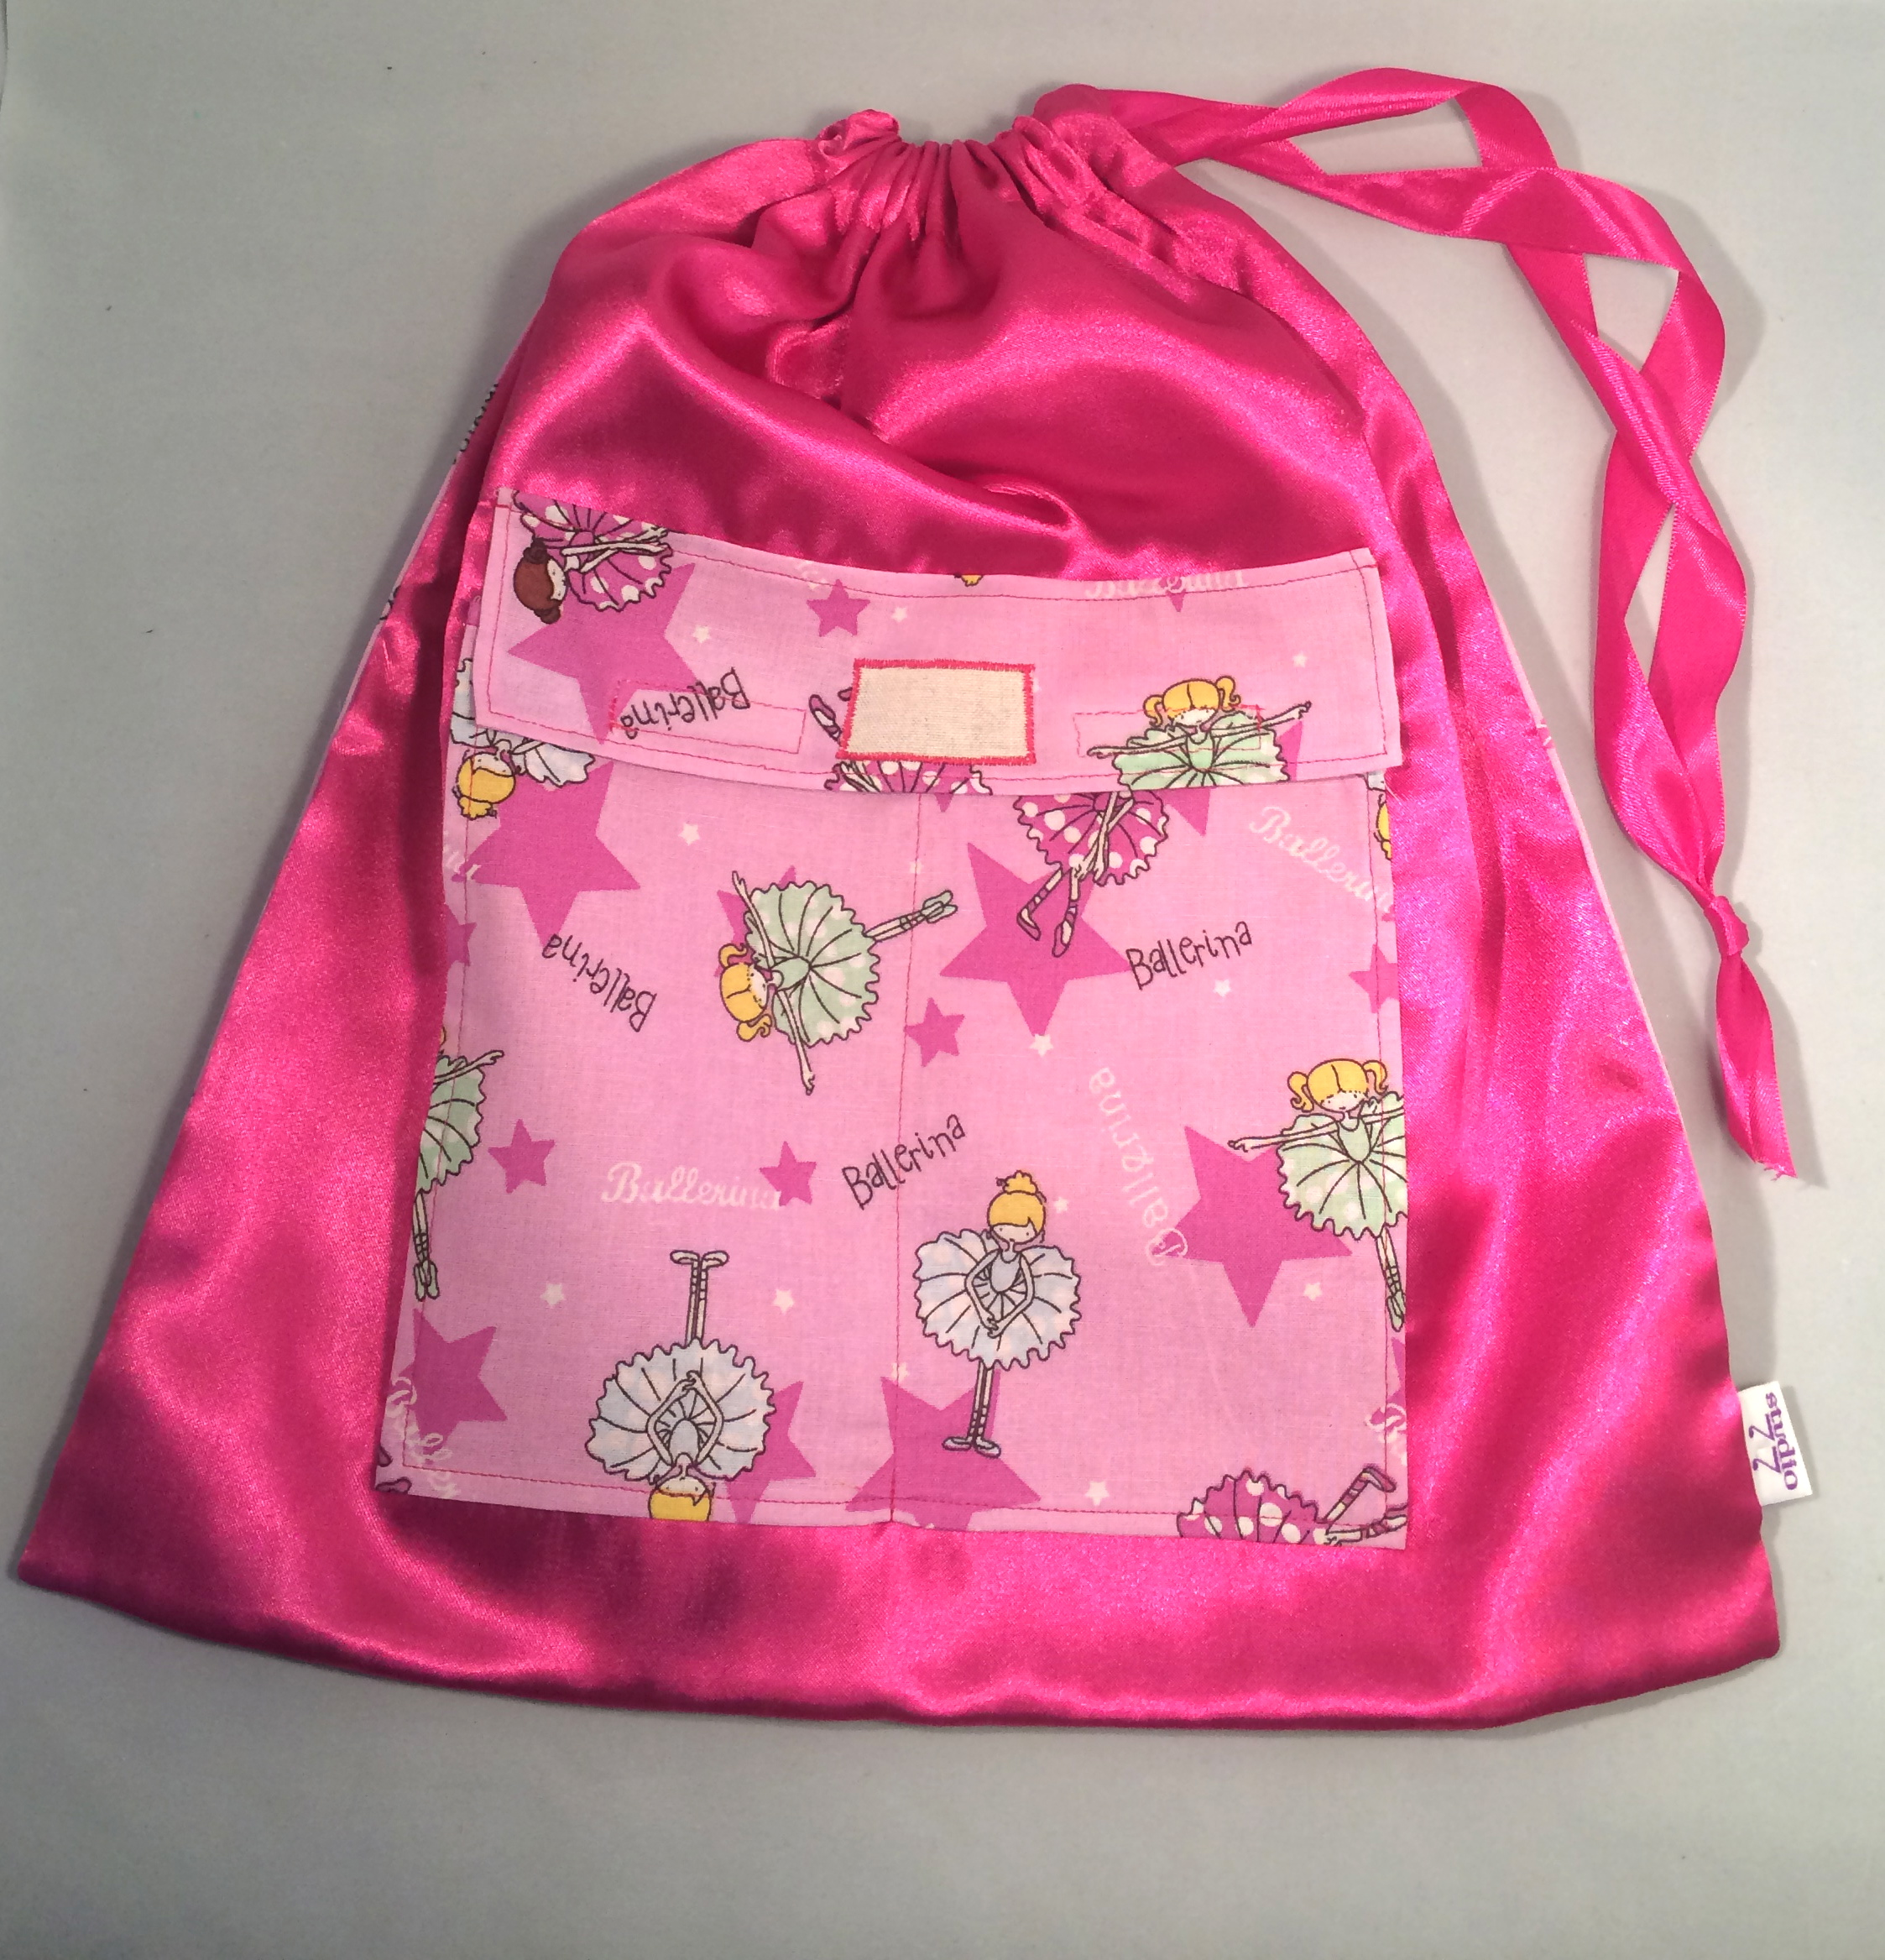 Ballet bag – bright pink ballerinas